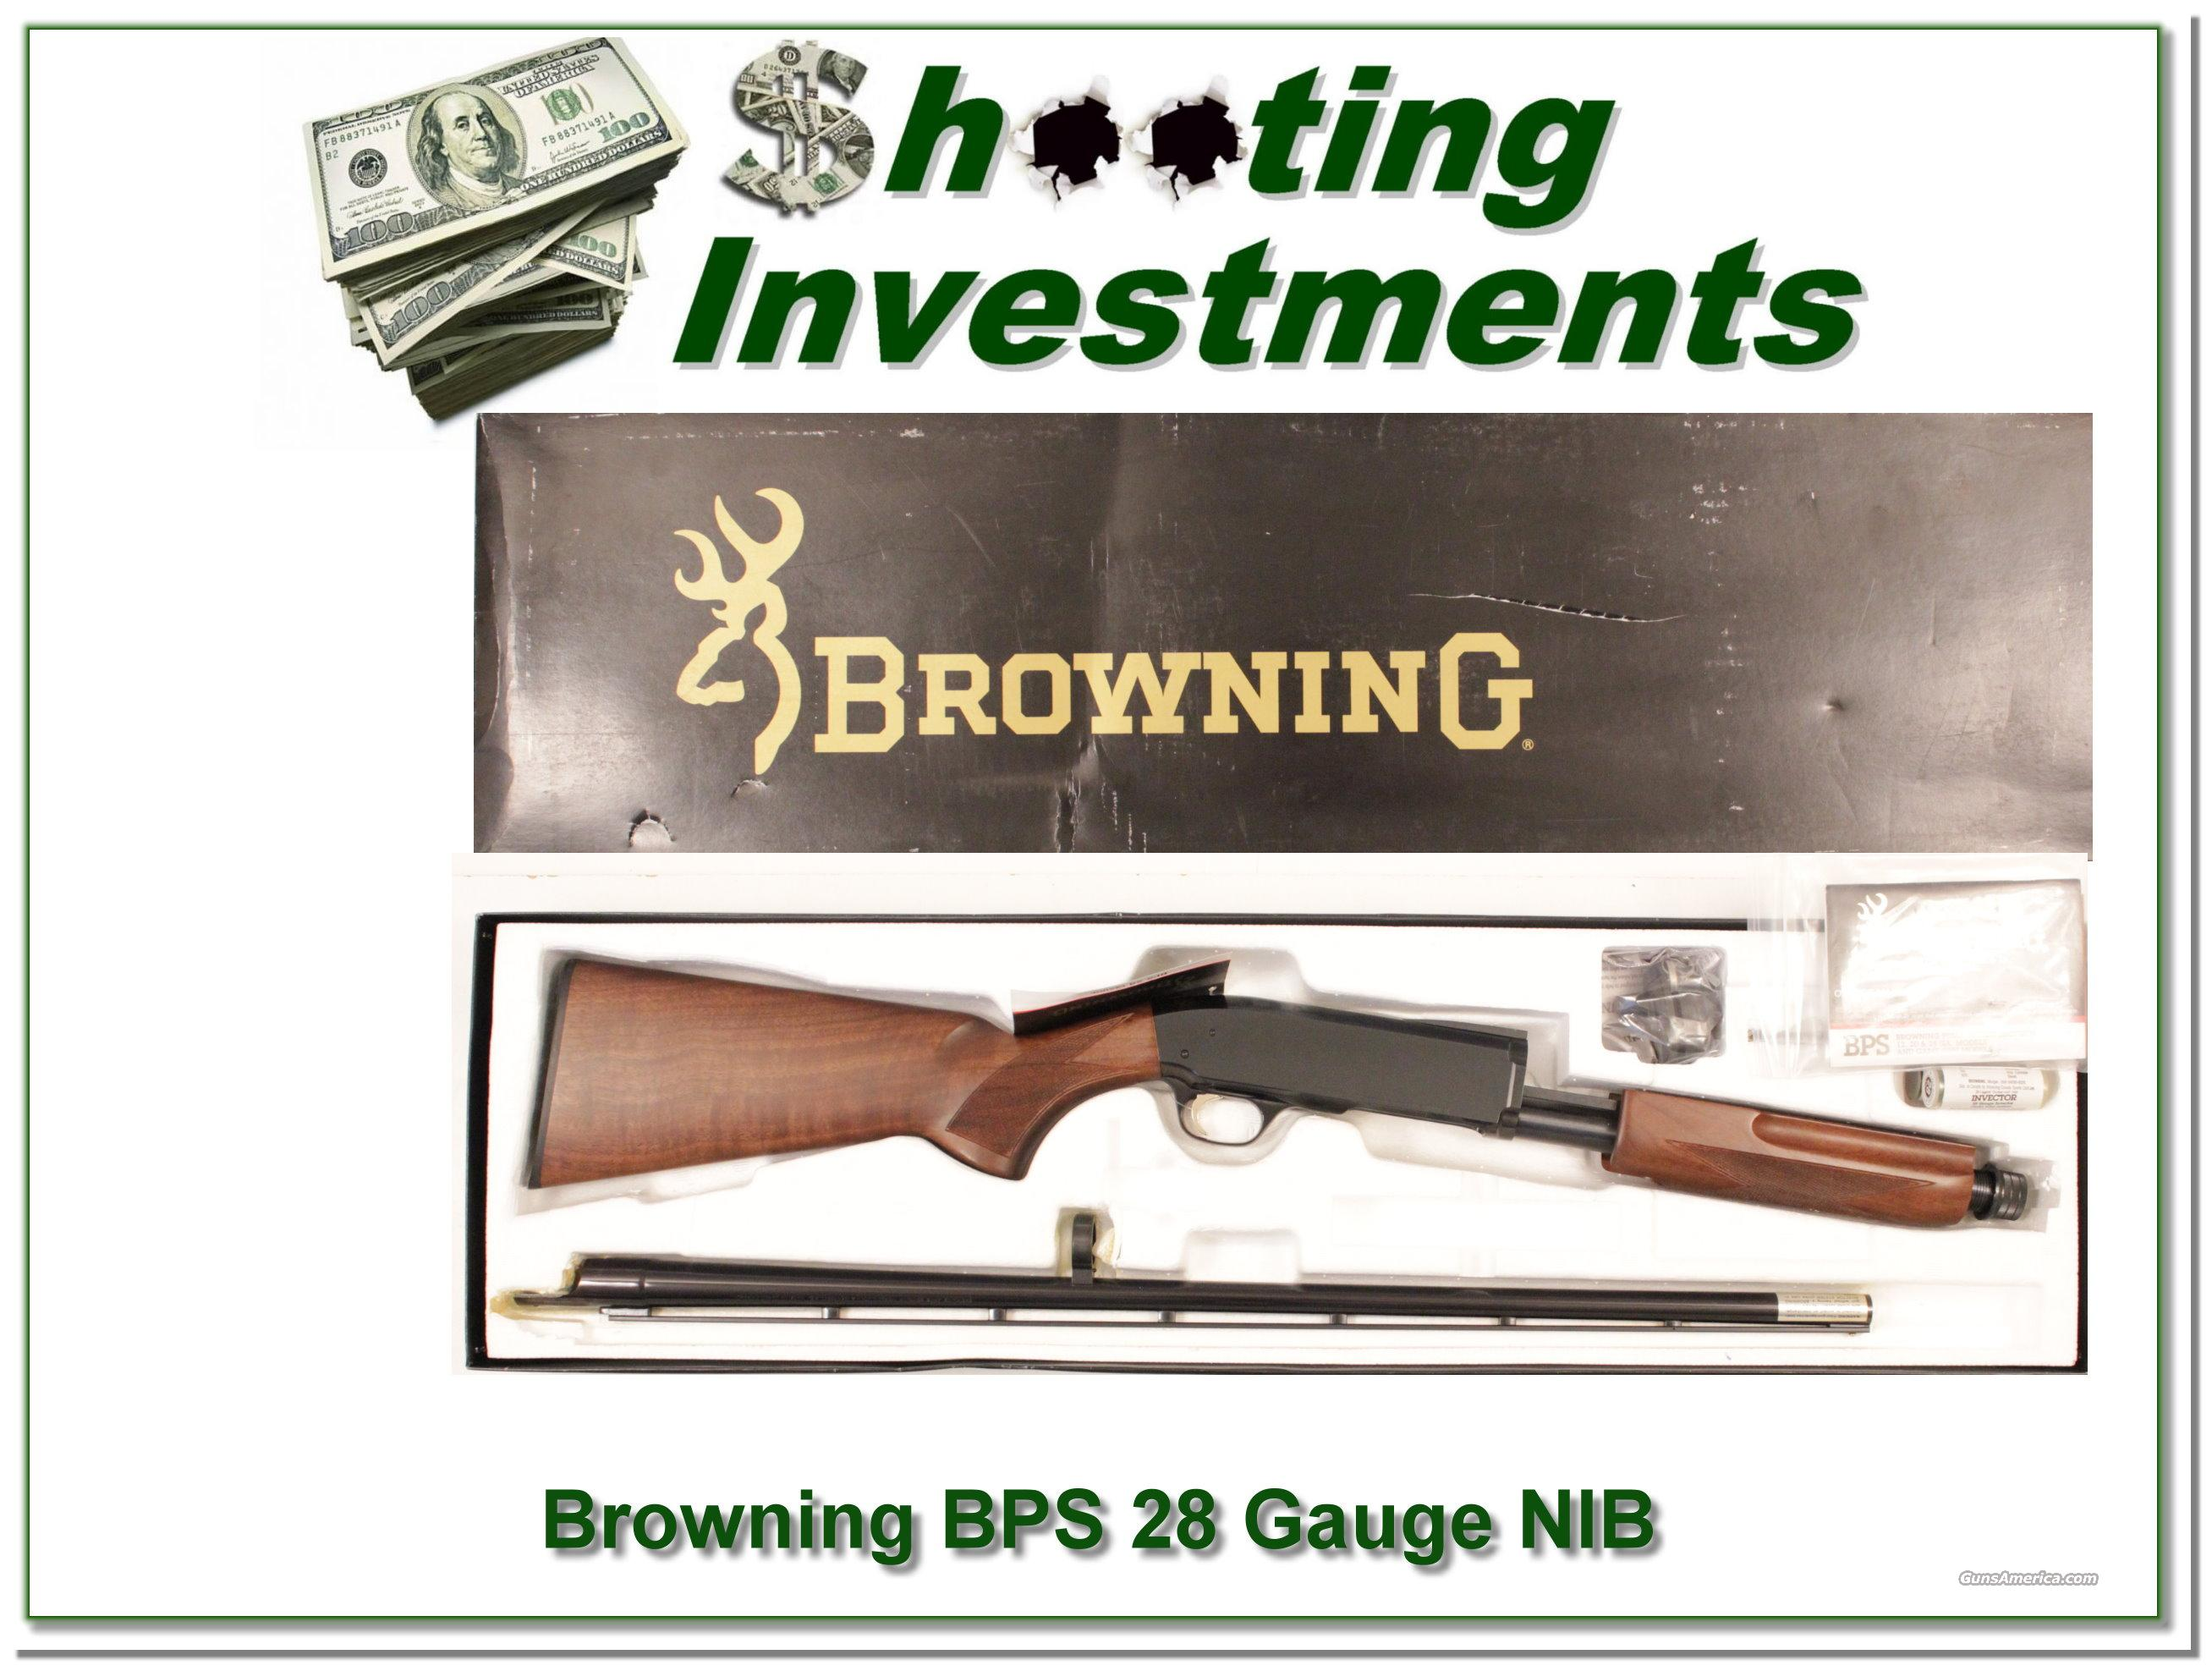 Browning BPS 28 Gauge NIB hard to find  Guns > Shotguns > Browning Shotguns > Pump Action > Hunting